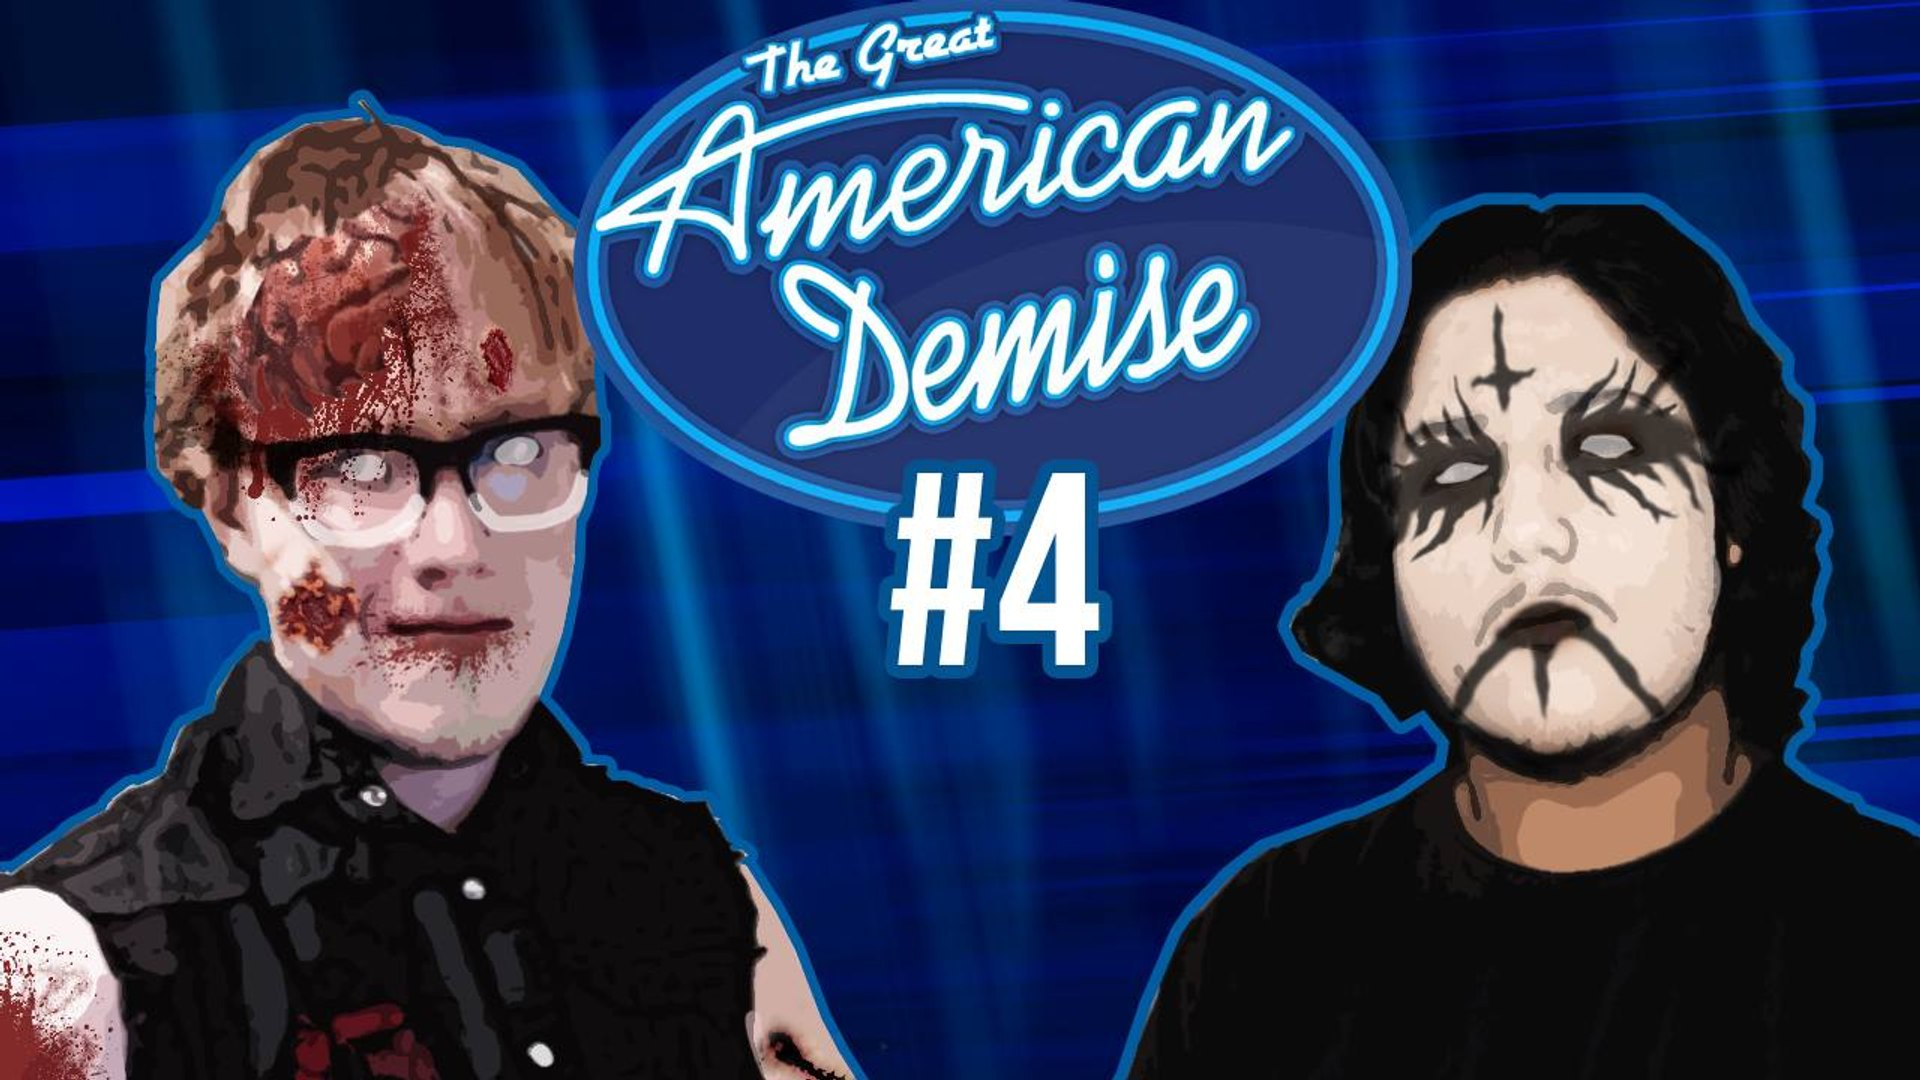 The Great American Demise [Episode 4 - Atticus TheDeathMetaller & COCF]